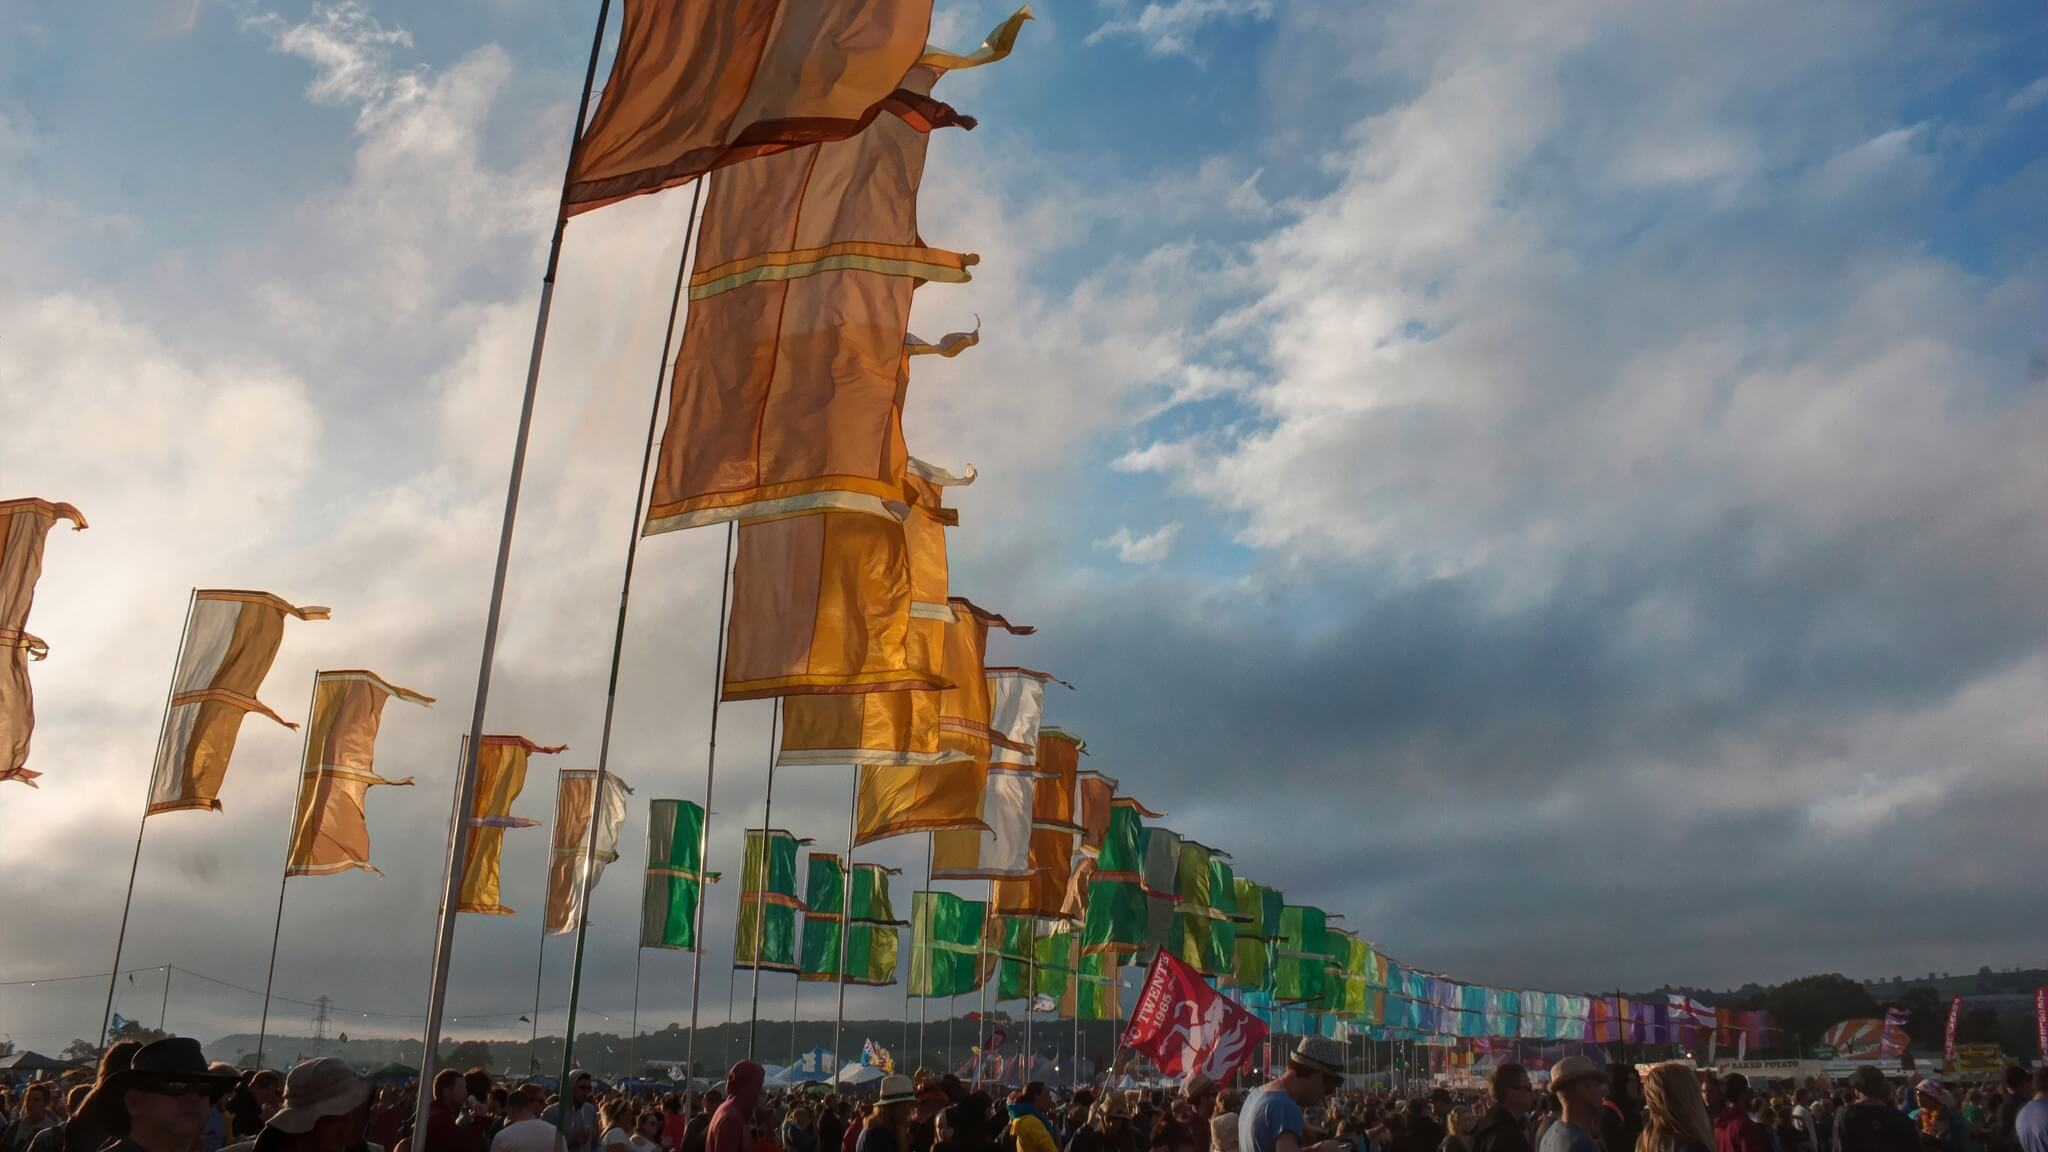 Blog posts about Glastonbury